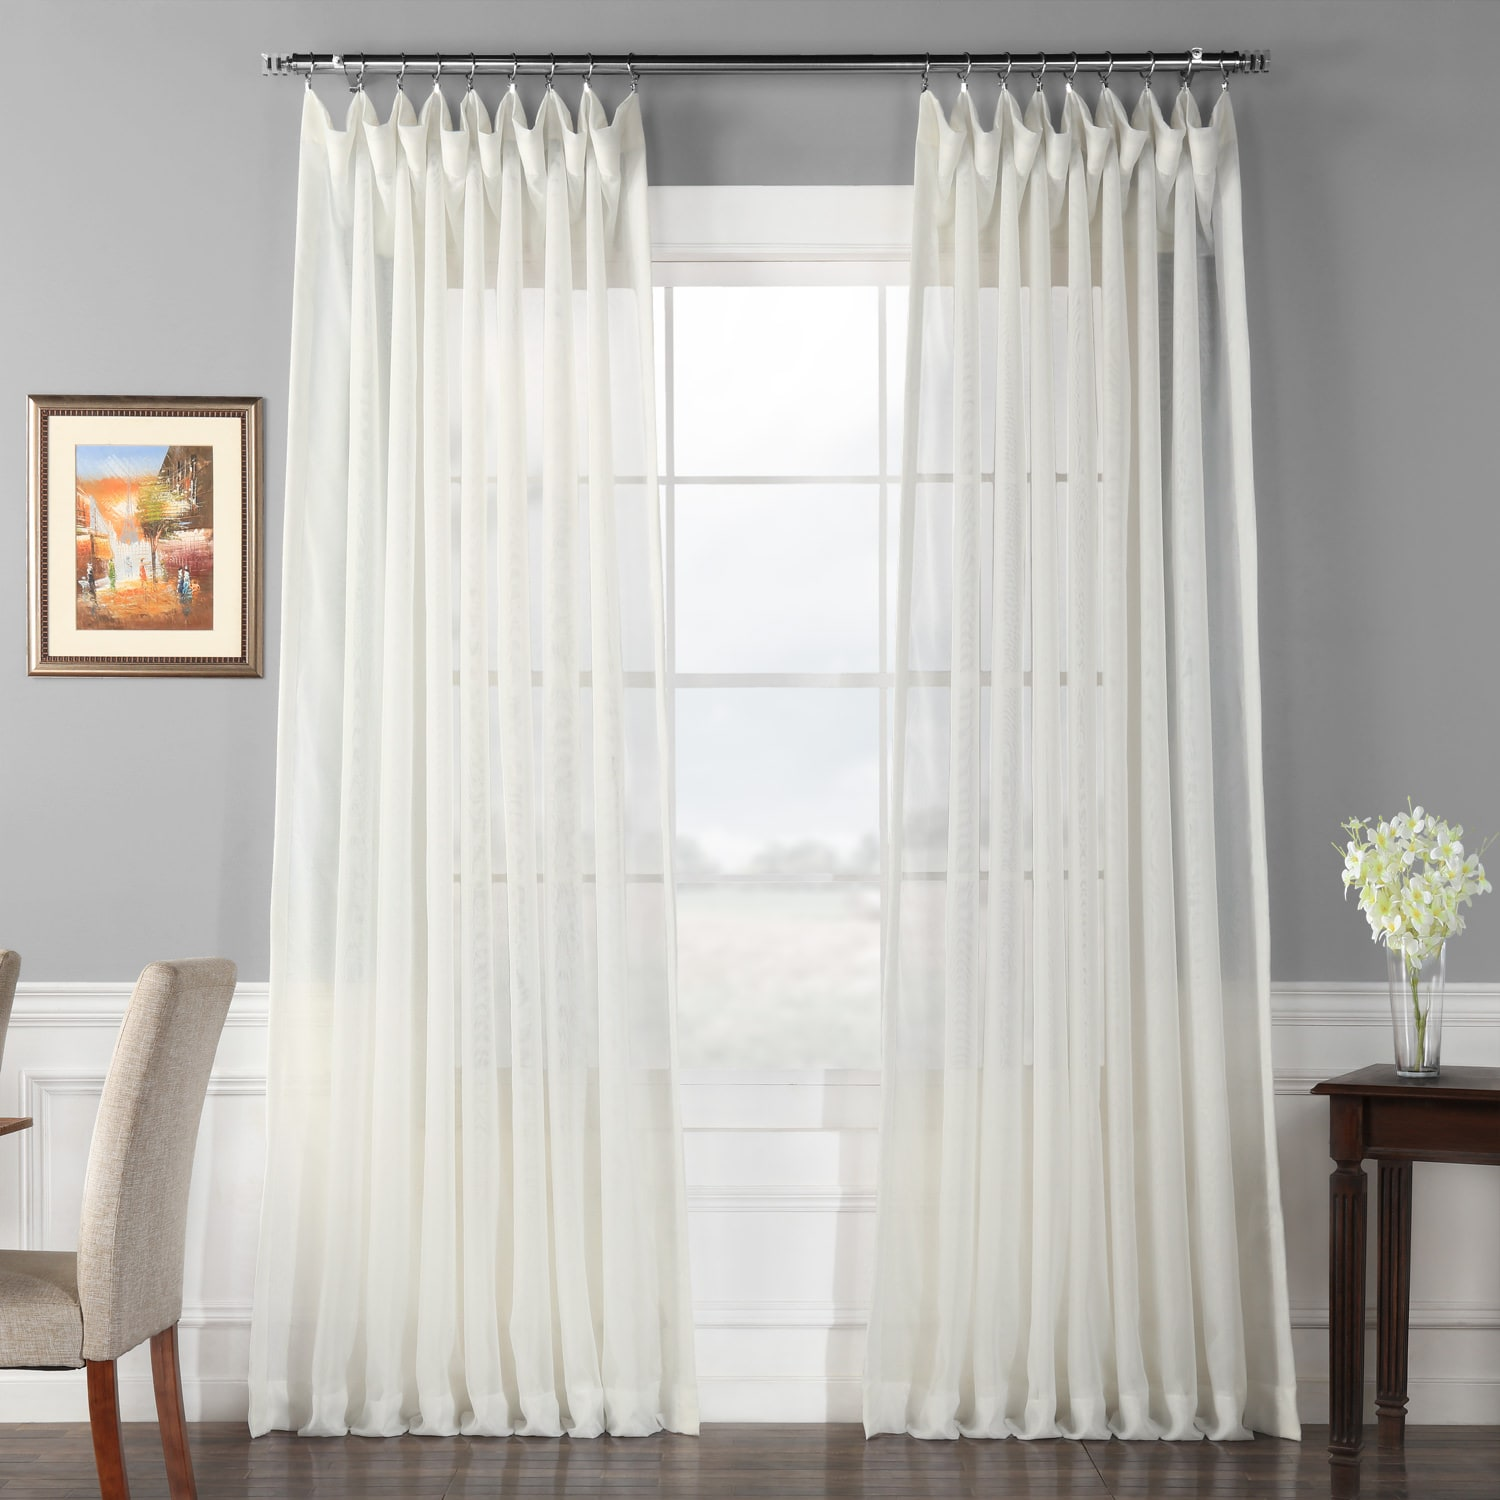 Double Wide Curtain Panels Double Layered Extra Wide Off White Sheer Curtain